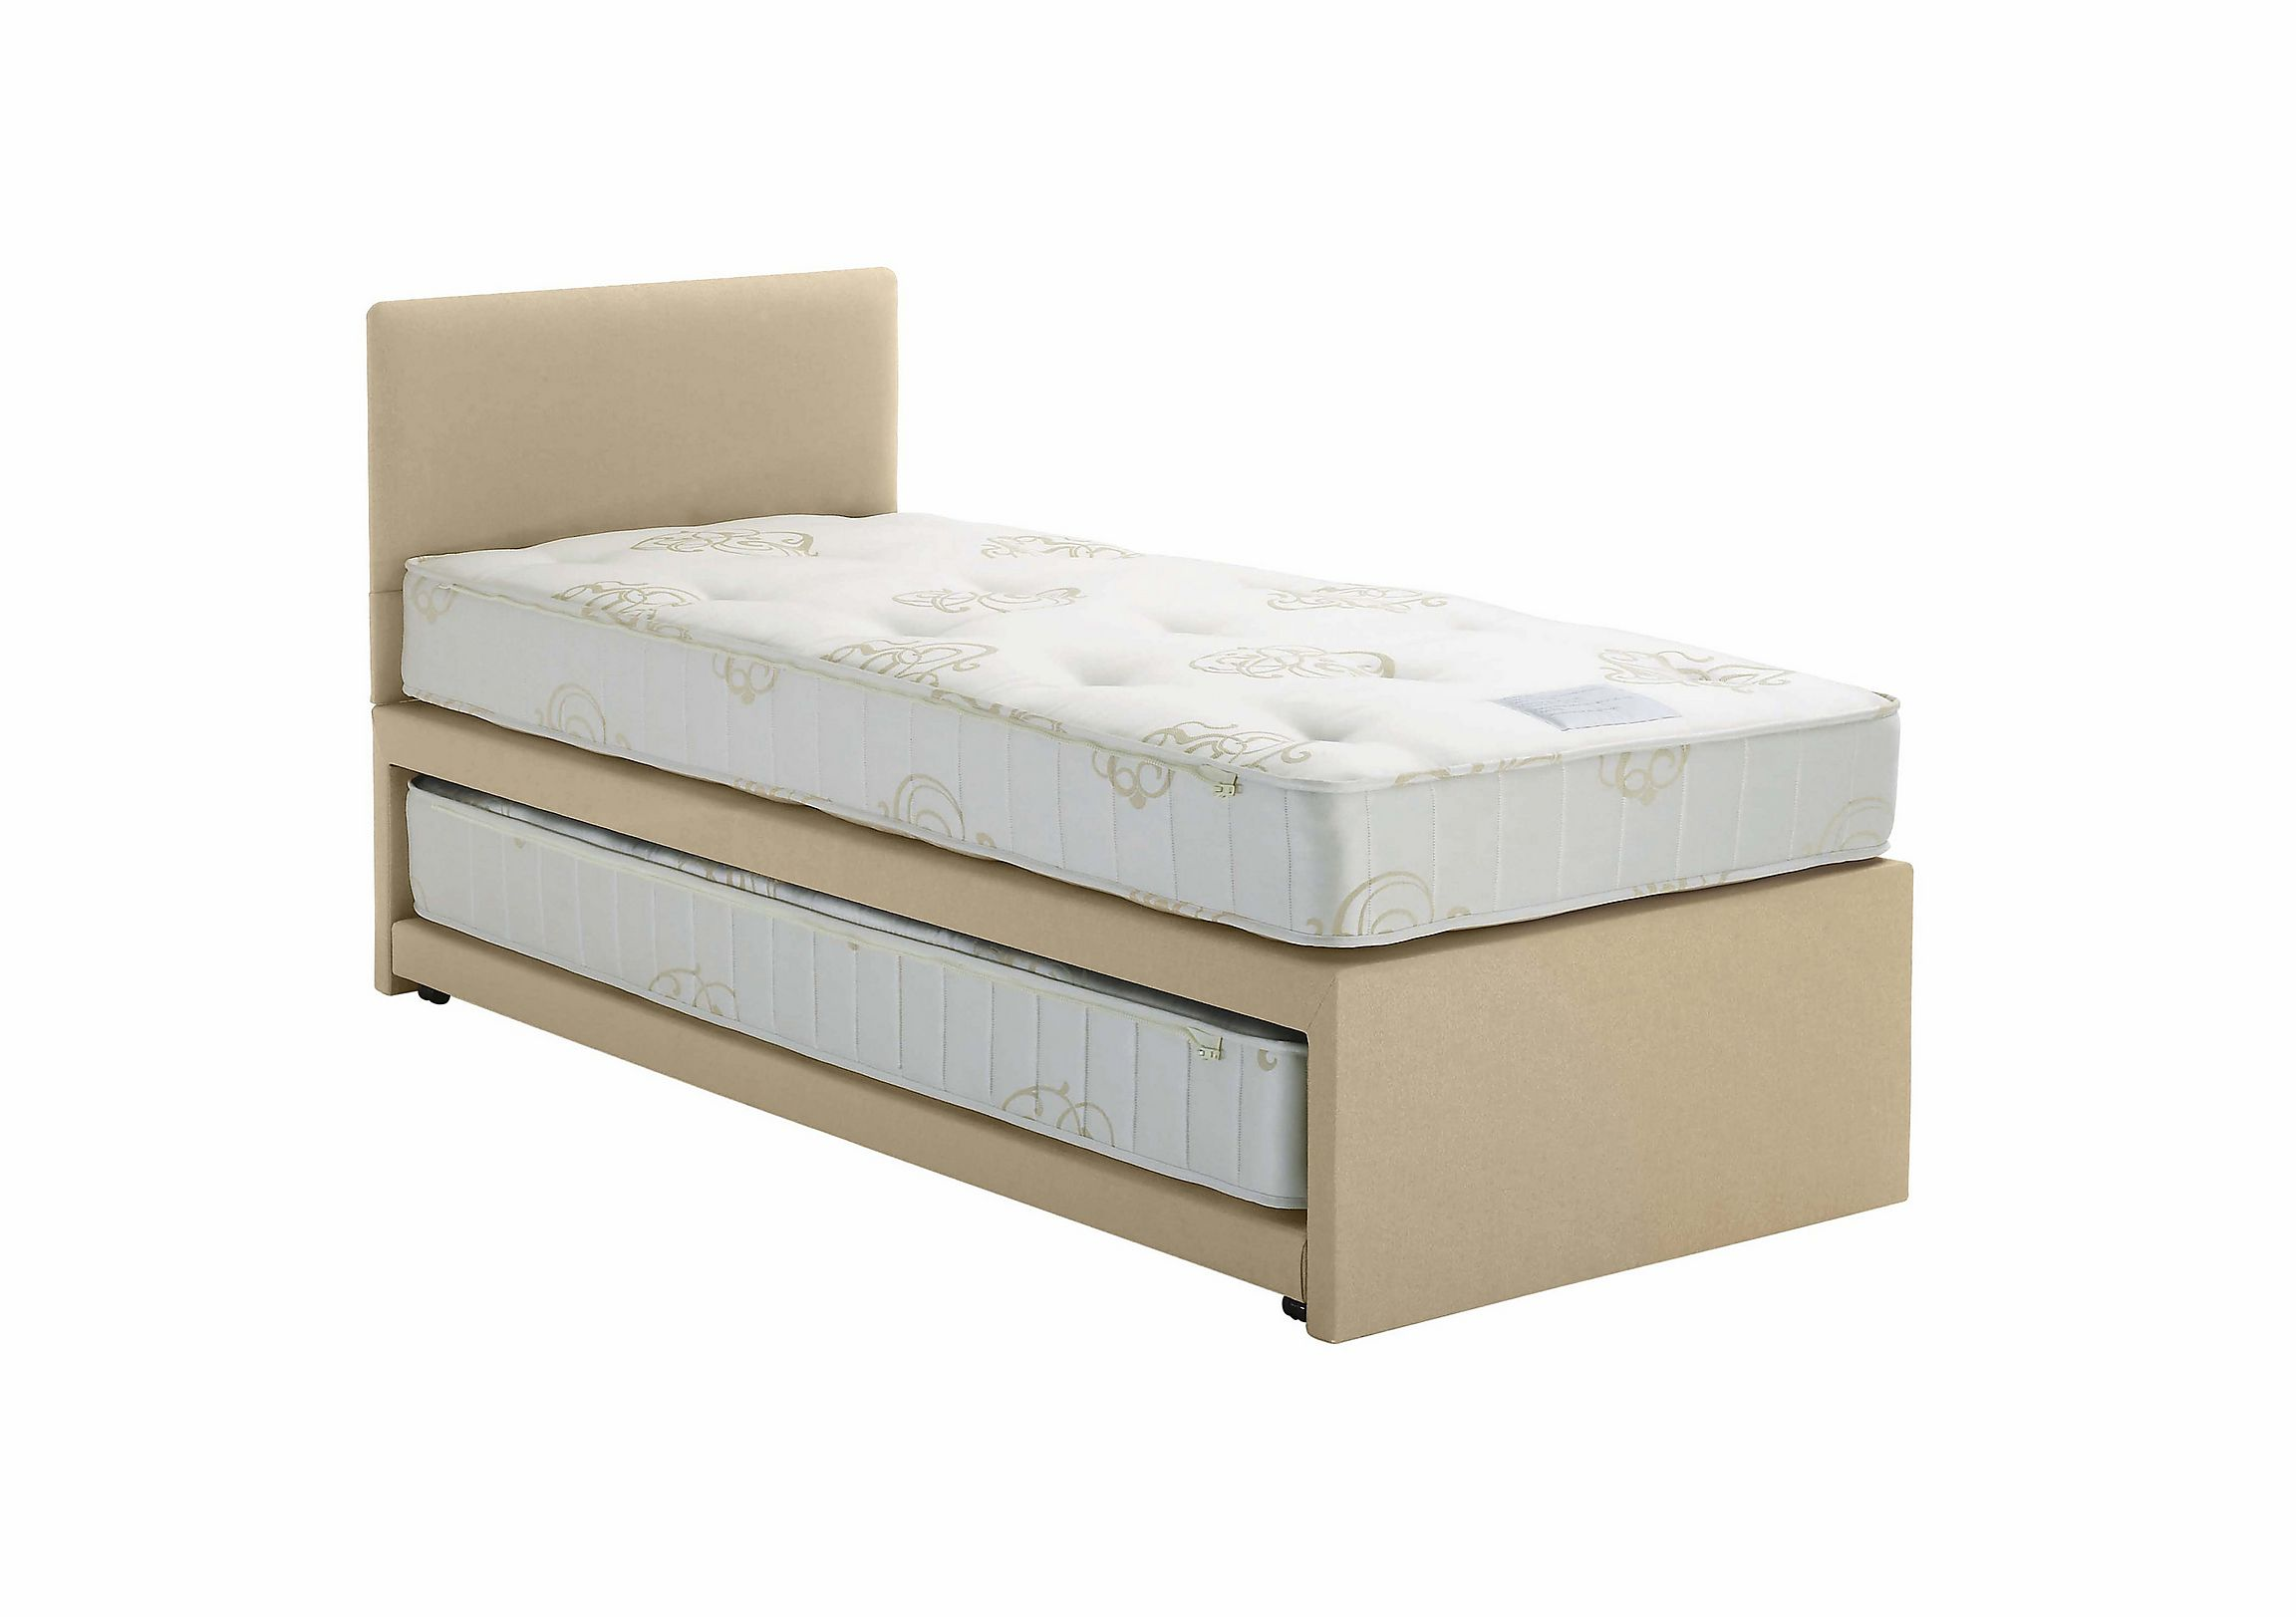 Hypnos Trio Guest Bed Free Pillows Free Delivery